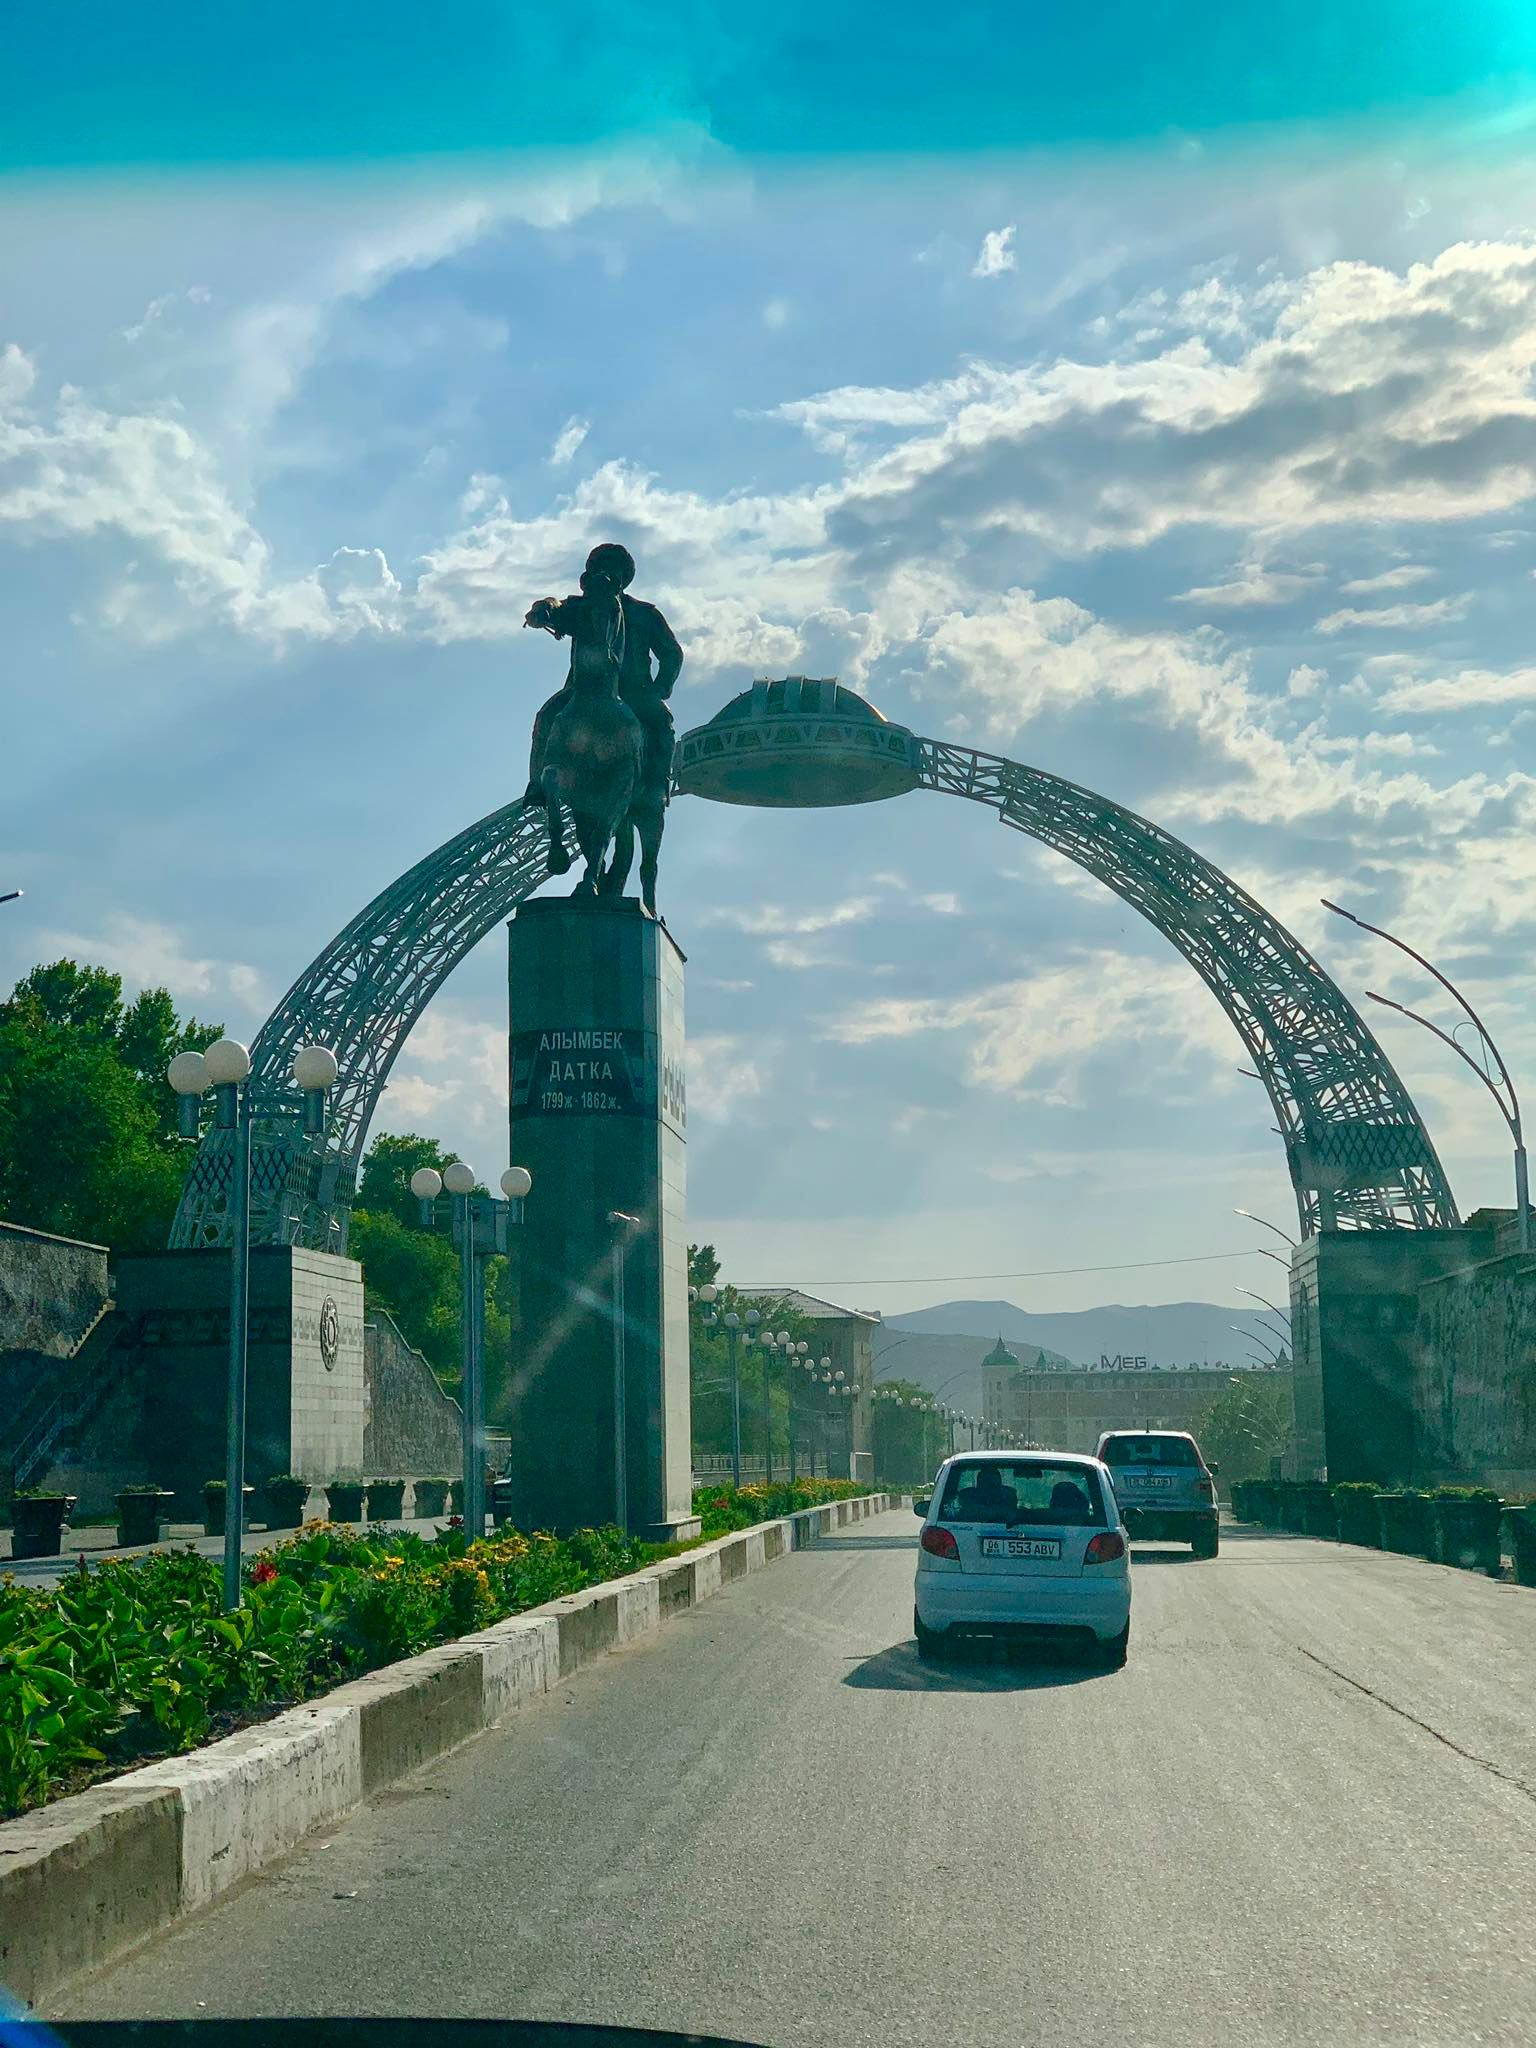 Kach Solo Travels in 2019 Hello from KYRGYZSTAN, my 128th country23.jpg